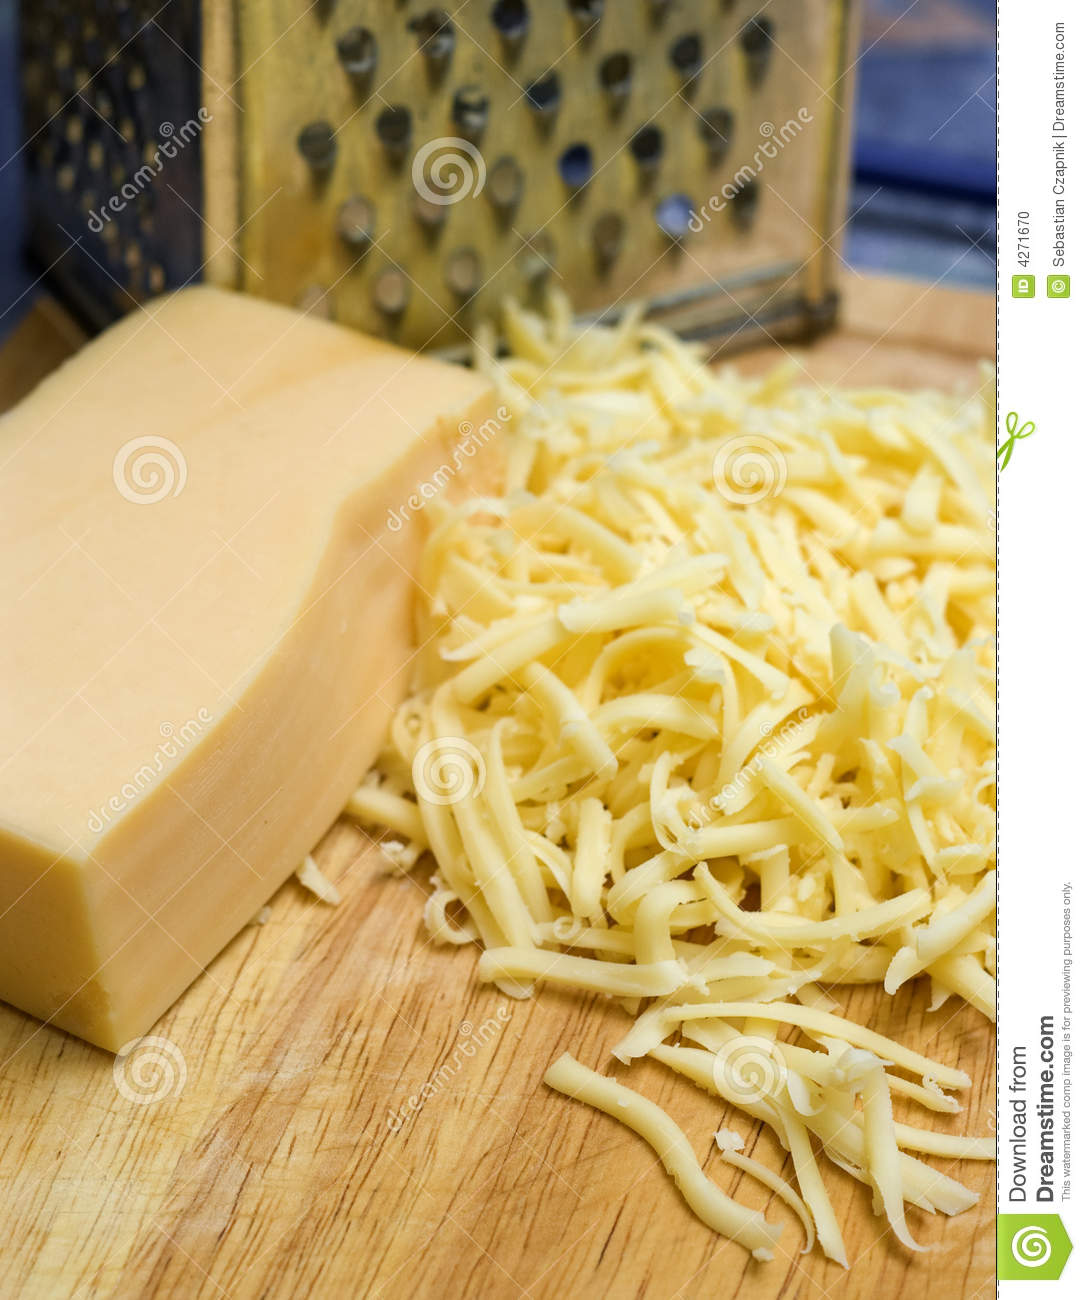 Grating Cheese Stock Photo - Image: 4271670